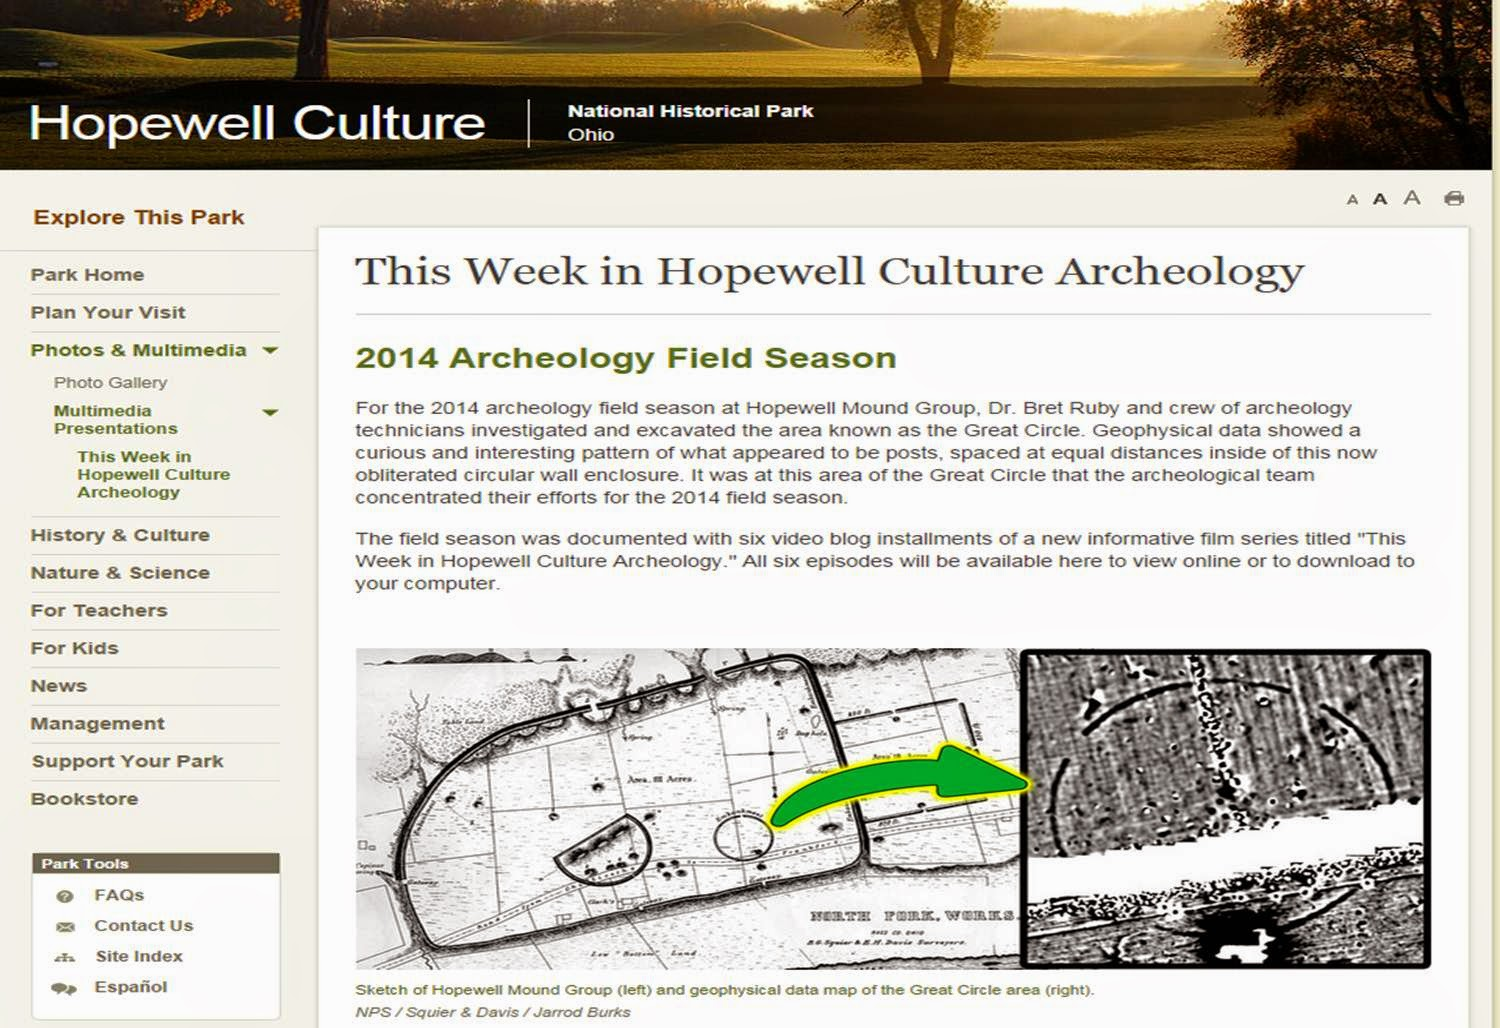 This Week in Hopewell Culture Archaeology